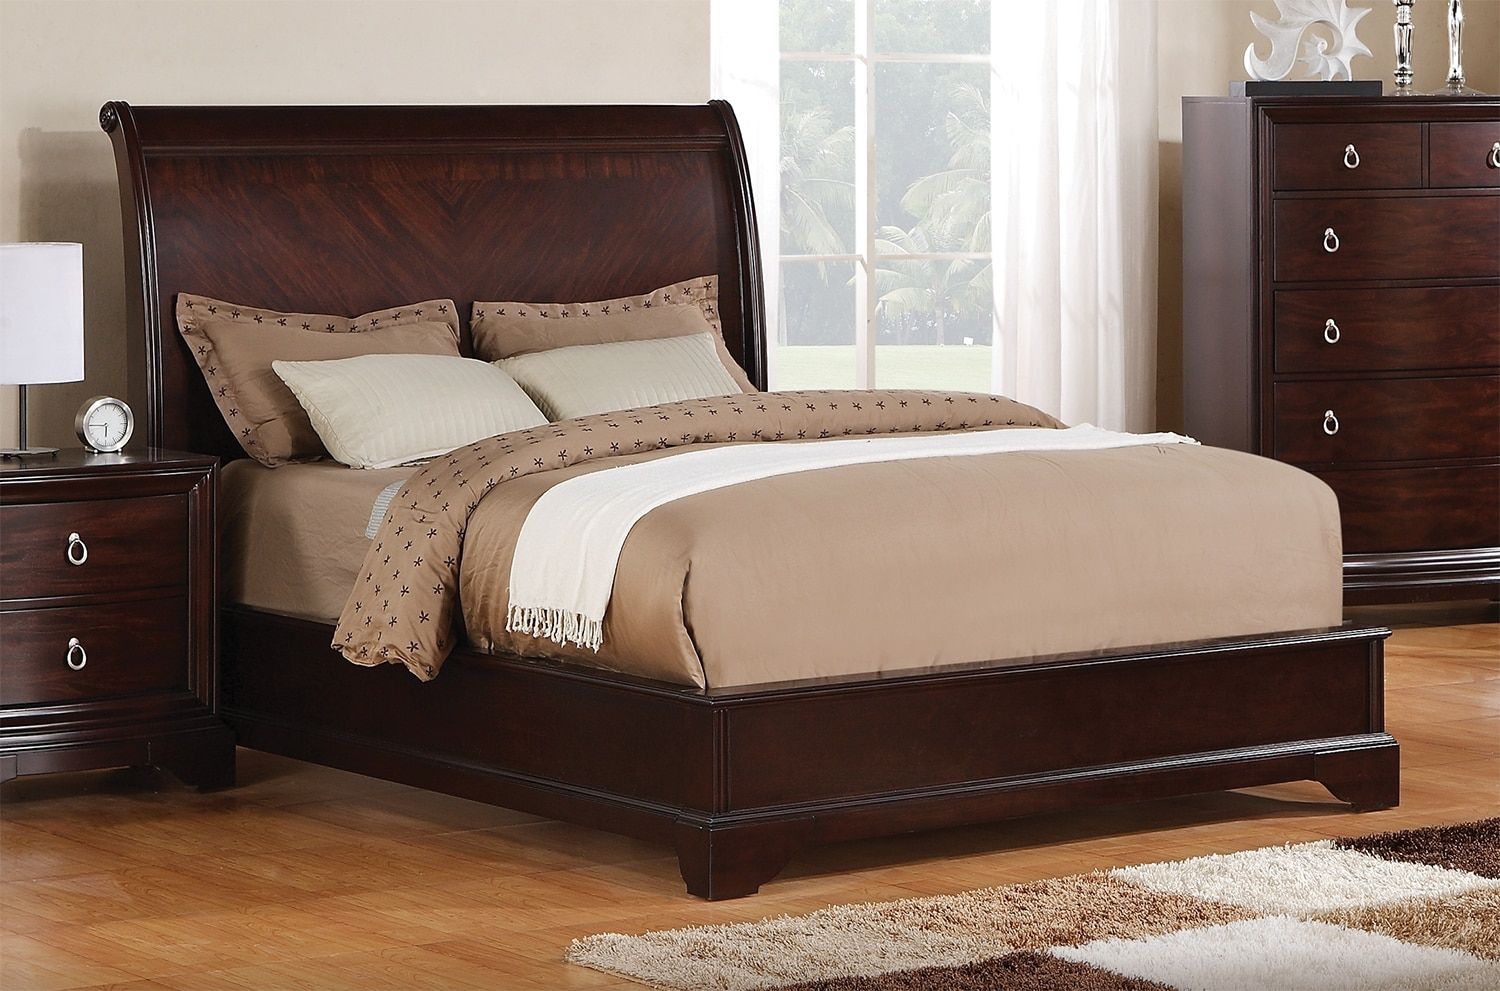 Noah King Bed - Dark Cherry